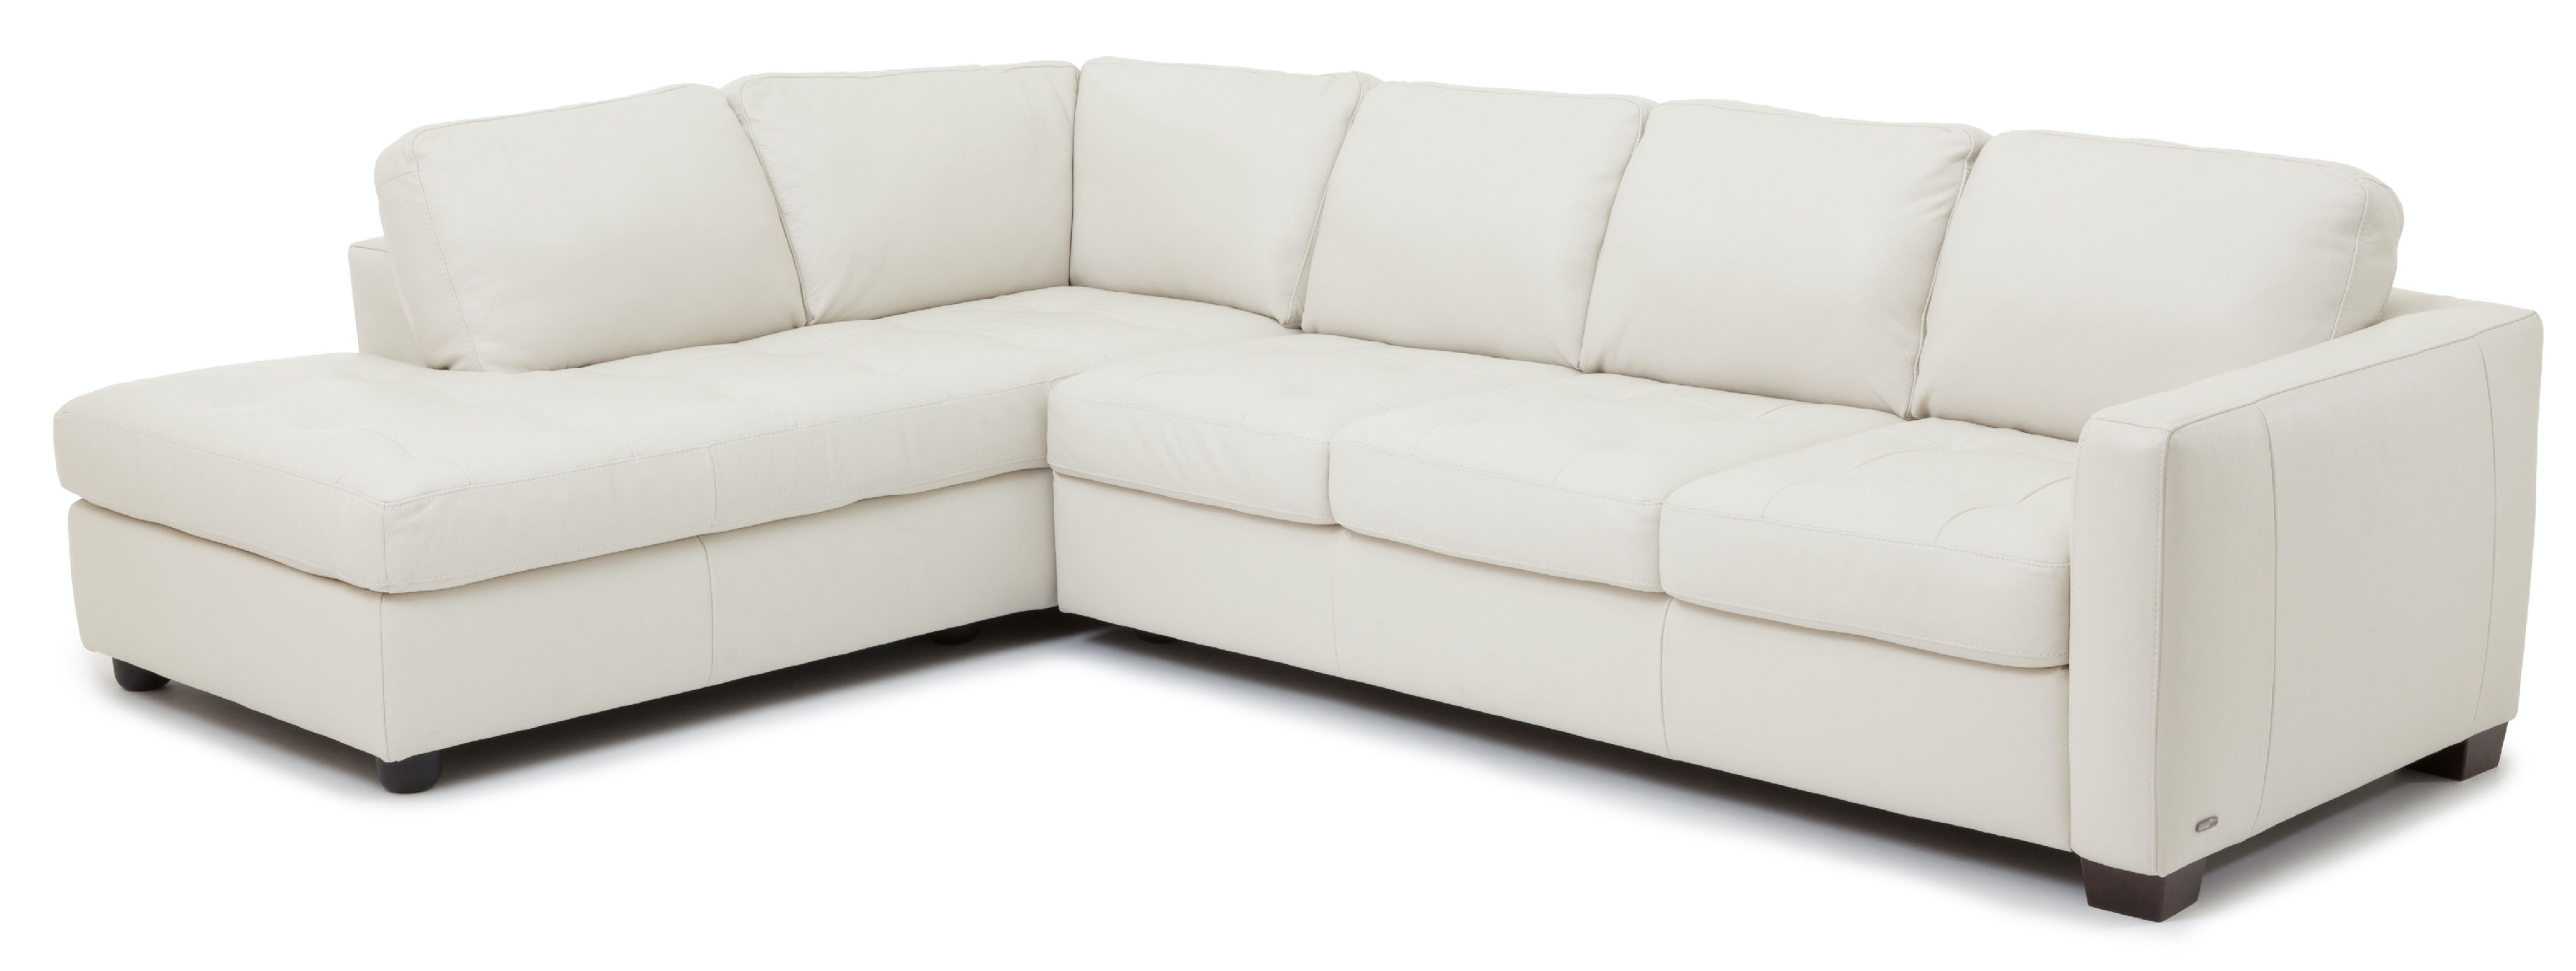 Denver 2 Piece Leather Sectional   IVORY KT:83196